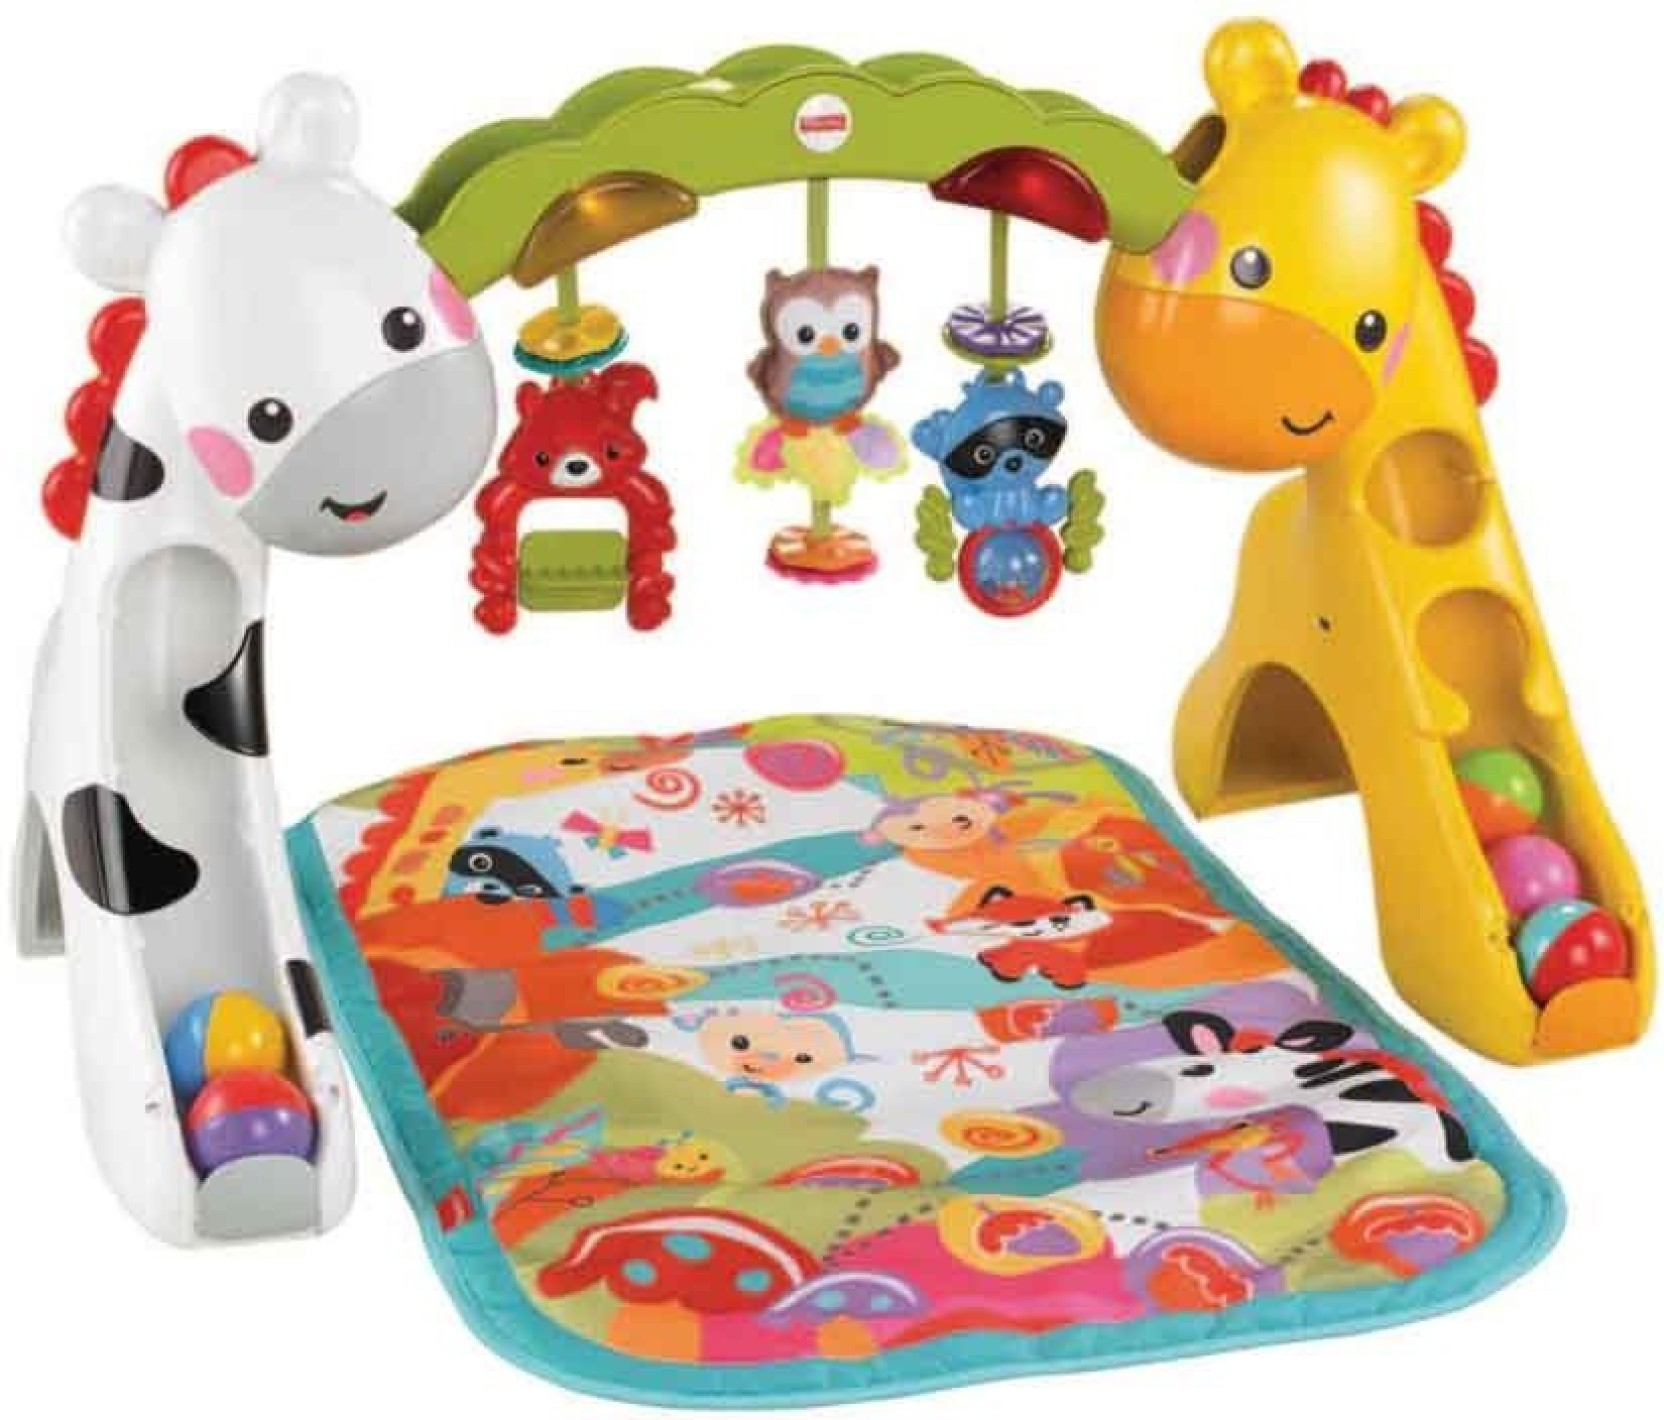 Fisher Price Newborn to Toddler Play Gym Newborn to Toddler Play